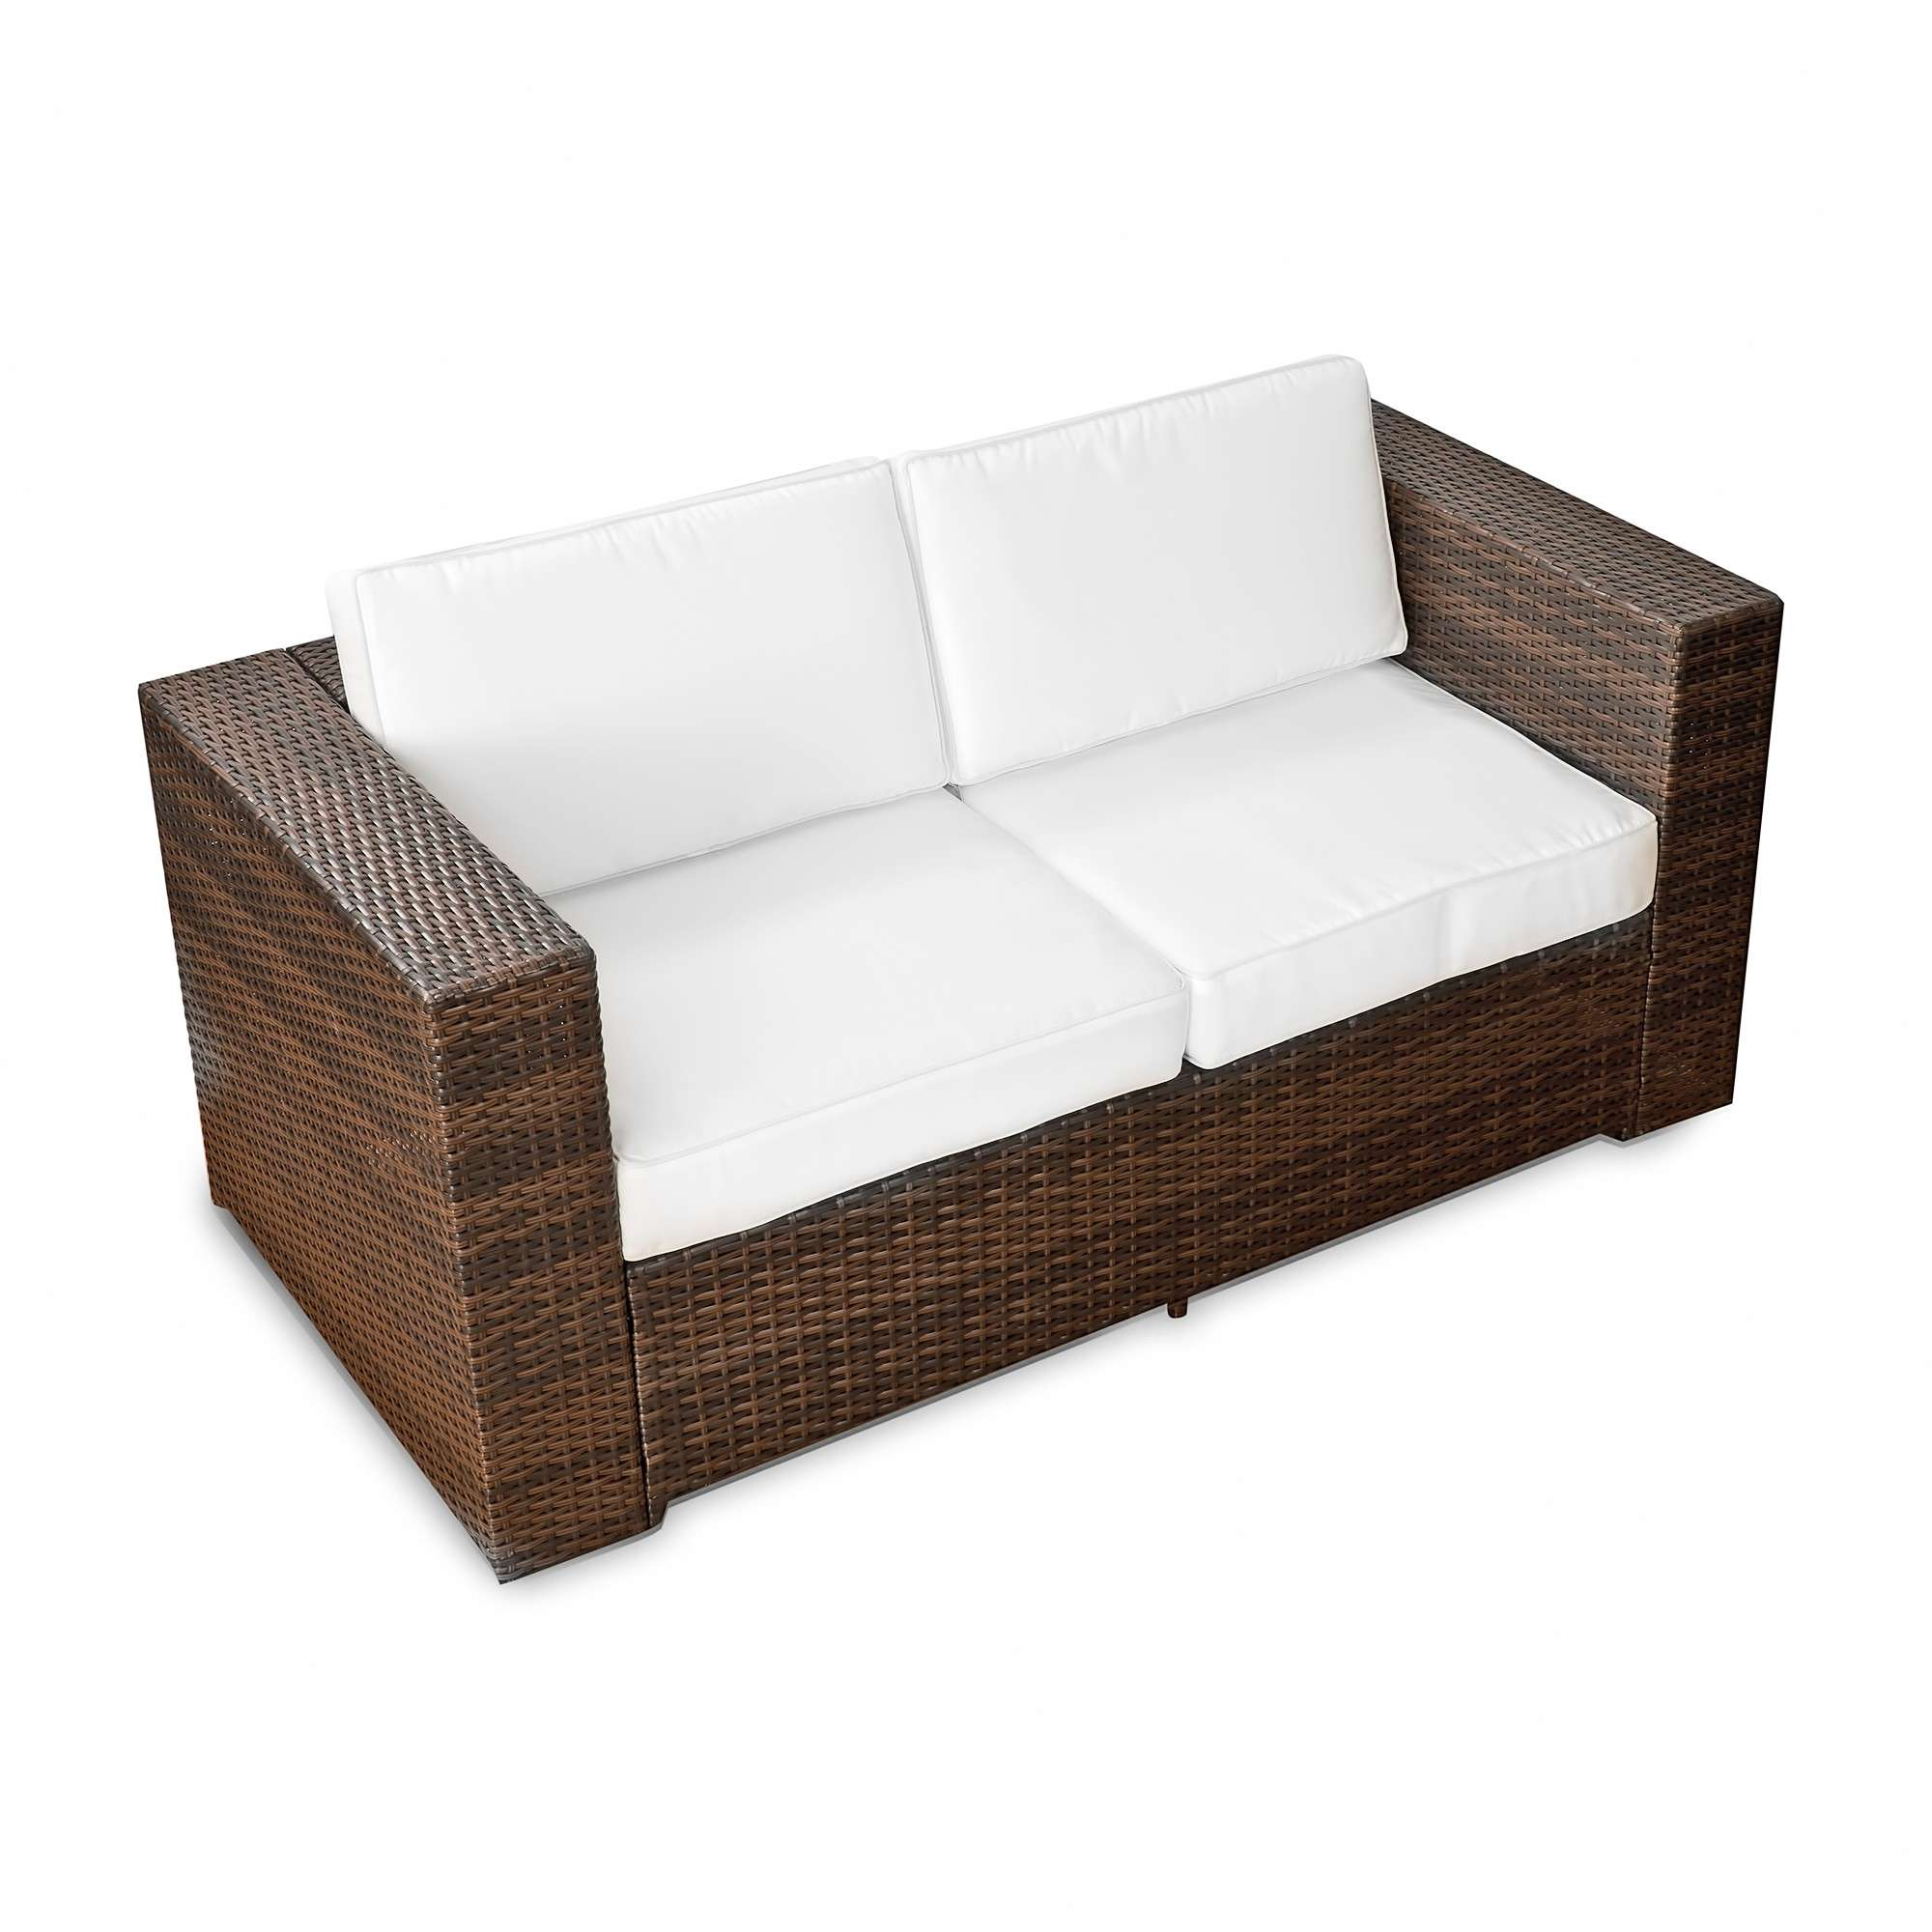 Full Size of Rattan Outdoor Sofa Cushions Furniture Bedford Set Sale Table Cover Bed For Corner Singapore Grey Vintage Garden Mauritius Couch Gnstig Kaufen Weiches Weiß Sofa Rattan Sofa